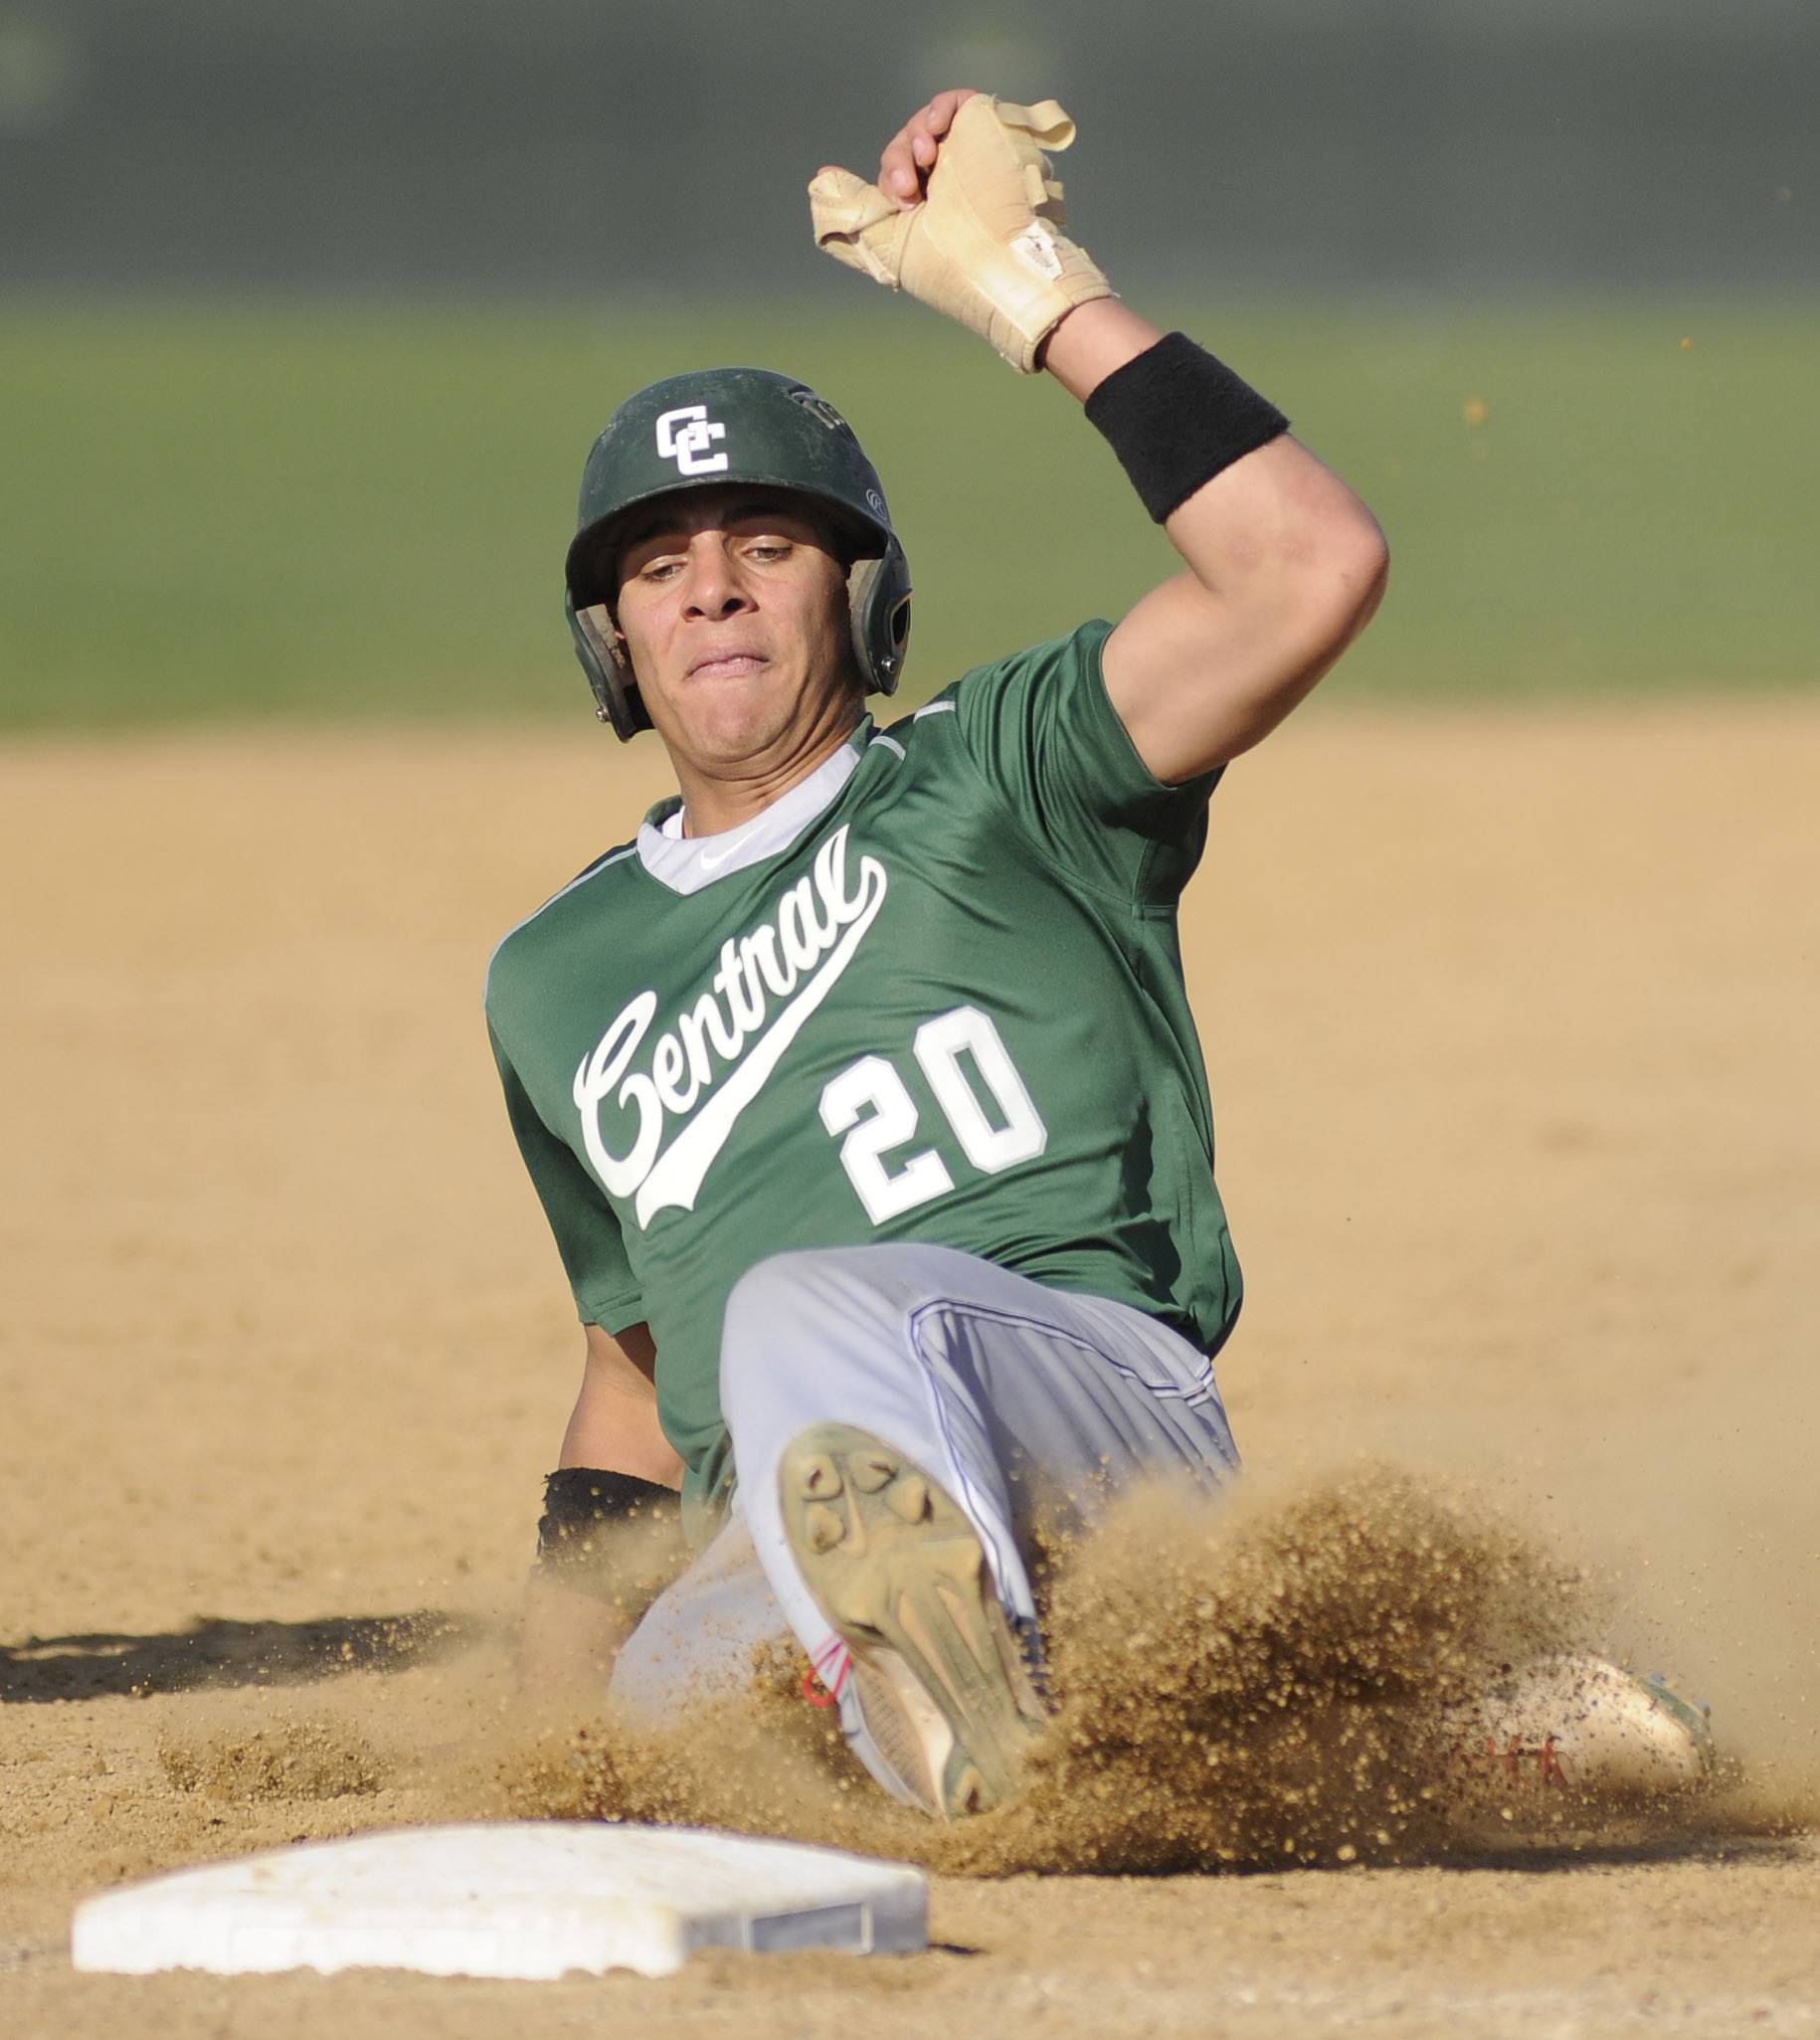 Grayslake Central's Freddie Landers slides safely into third base in the third inning vs. Hampshire Friday.